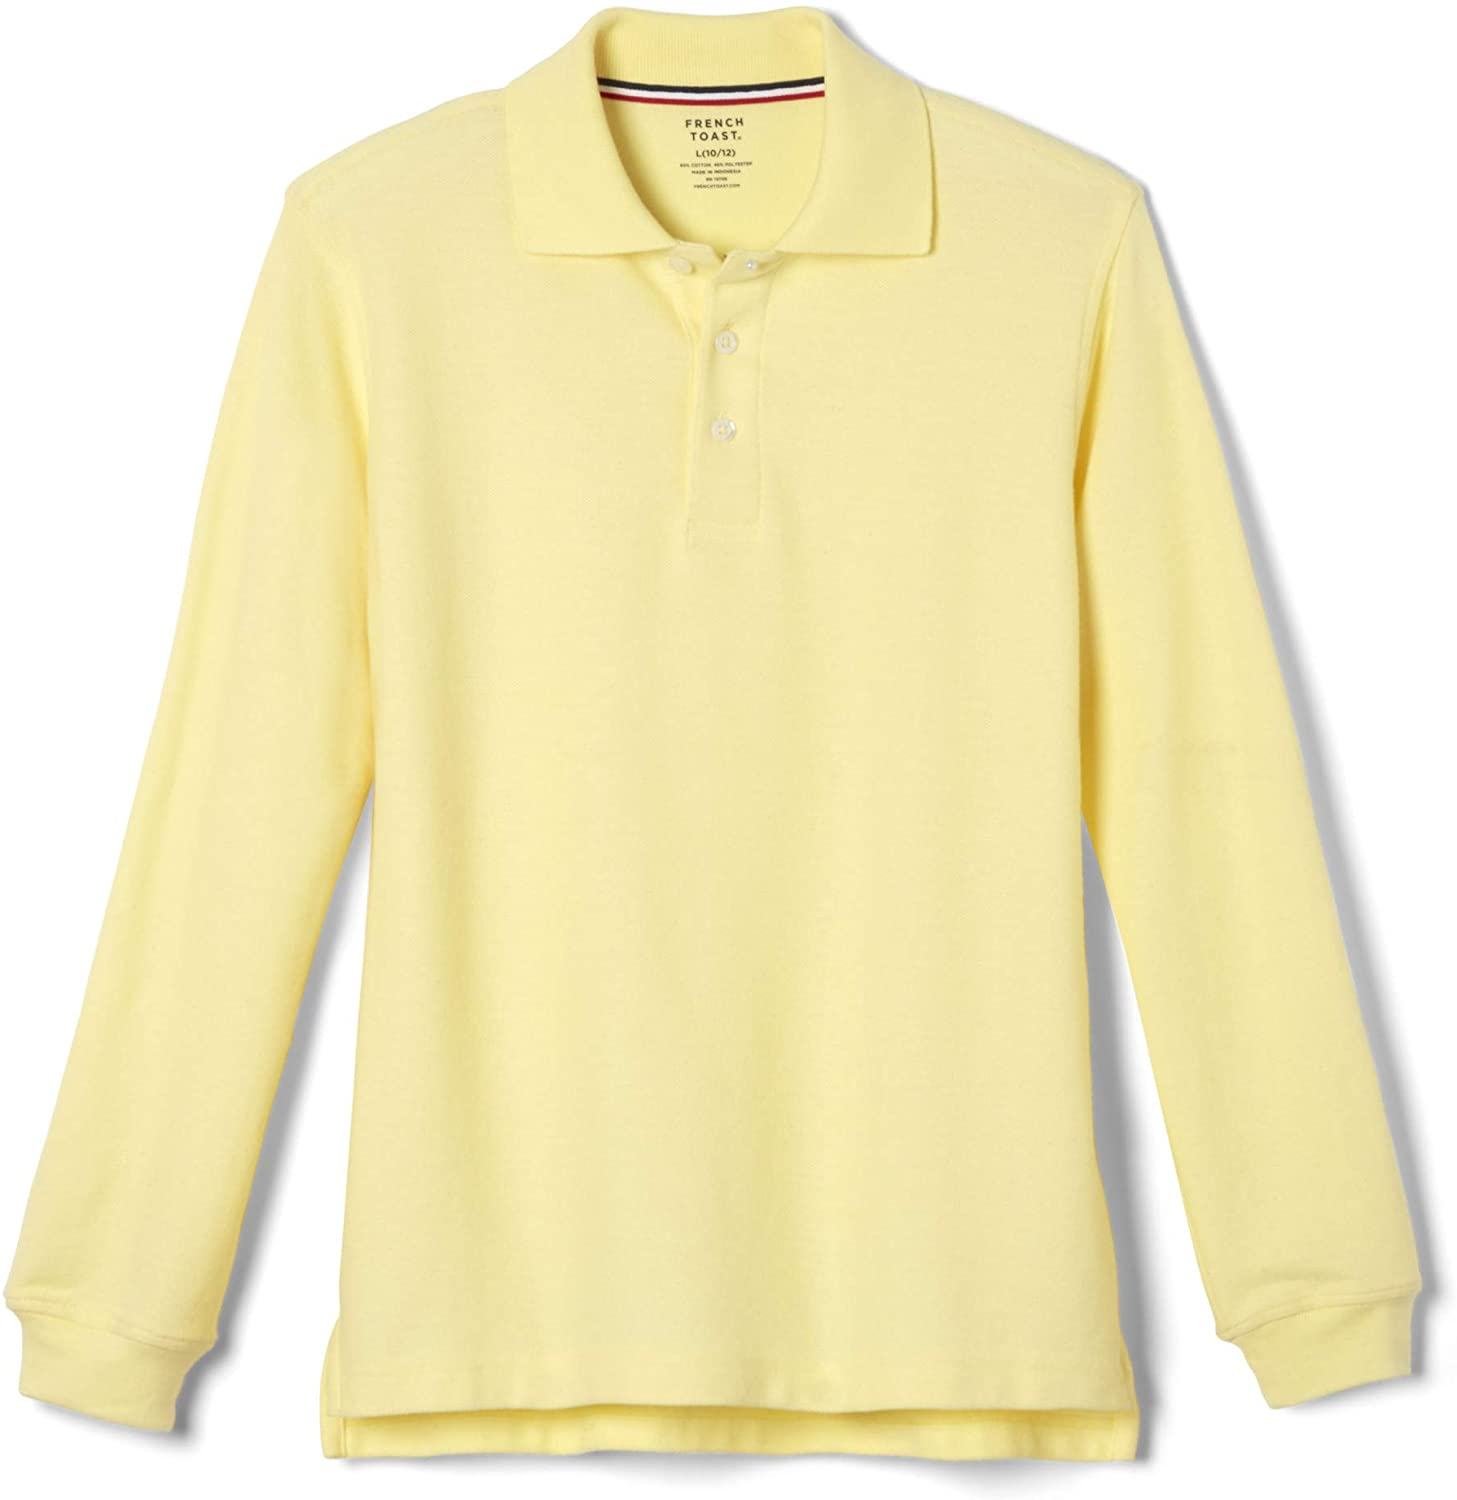 Unisex Long Sleeve Pique Knit Shirt By French Toast (Size 4, Yellow)